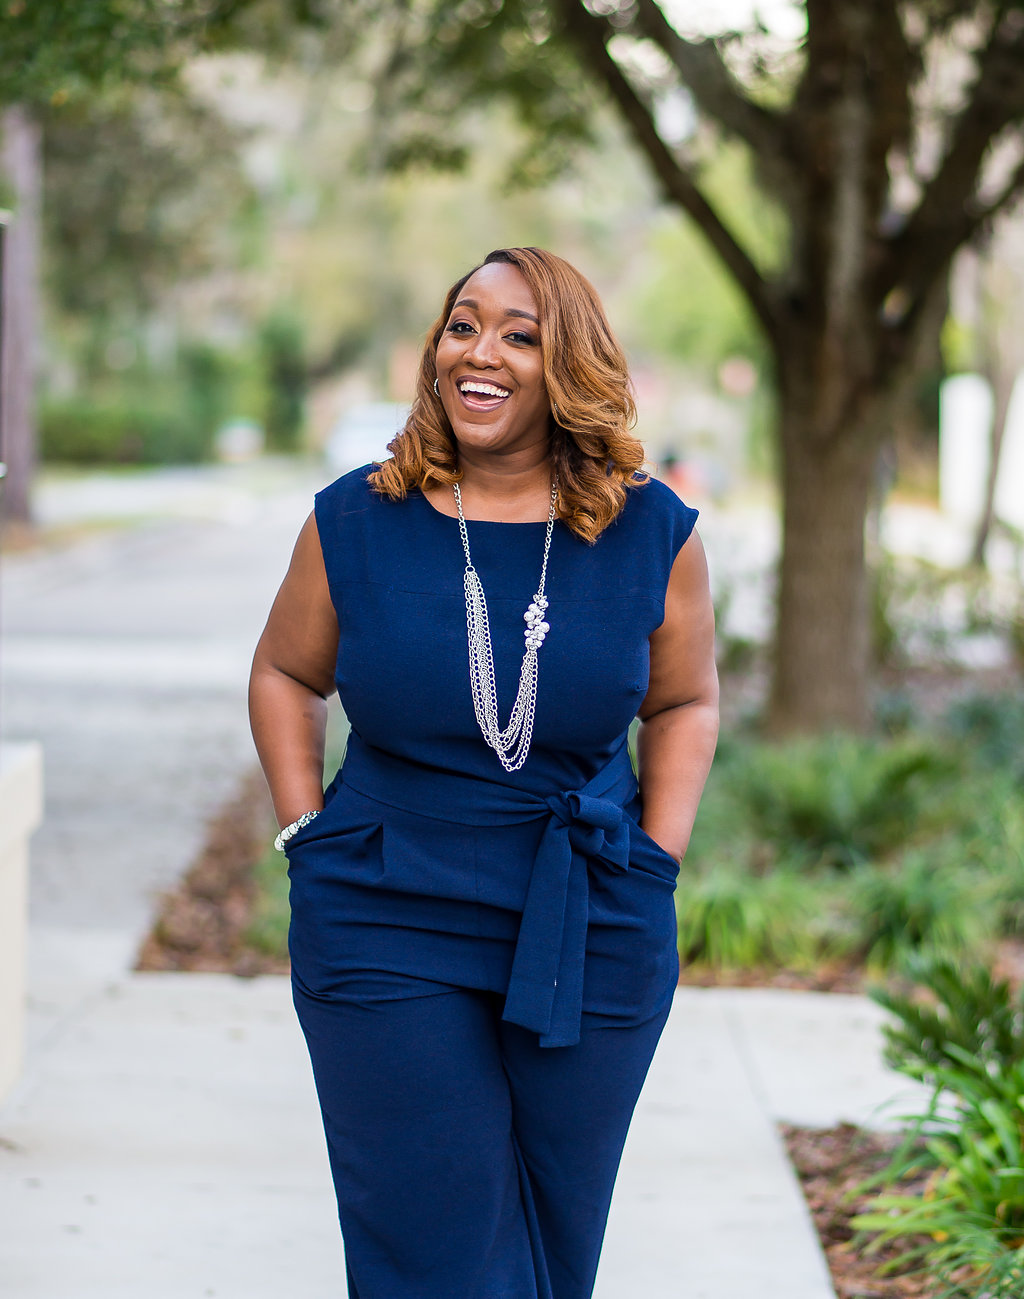 K.Riley - I am in love with helping build strong leaders for our children. I am a Principal Coach and Educational Career Specialist. I help aspiring school leaders reach their education career goals by teaching them the skills necessary to be successful.I have worked as a teacher, instructional coach, principal and leadership coach. I've had experience working with multiple grade levels ranging from Kindergarten to 12th grade in various states. In each capacity of my career I have always incorporated coaching to assist others and myself.What I have learned over time is that educational leaders need support that comes from a place of understanding, skill and compassion.Let's Get To Work!